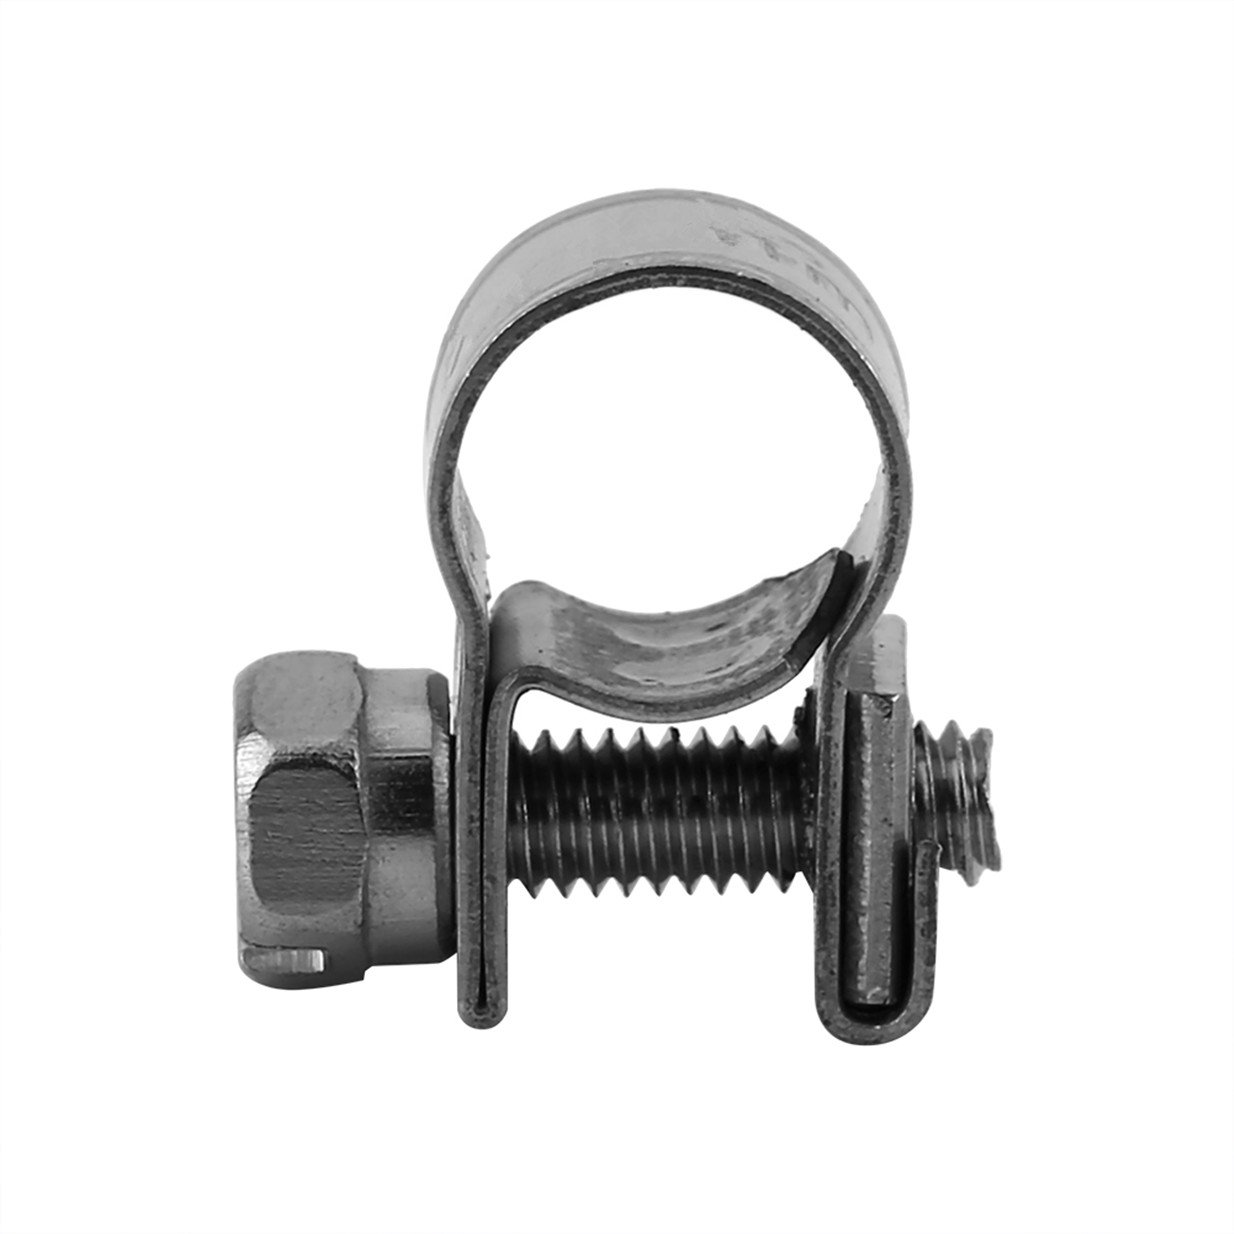 10pcs Hose Clamp,13-20mm Diameter Stainless Steel Mini Fuel Line Pipe Hose Clip Adjustable Tube Clamps 16-18mm